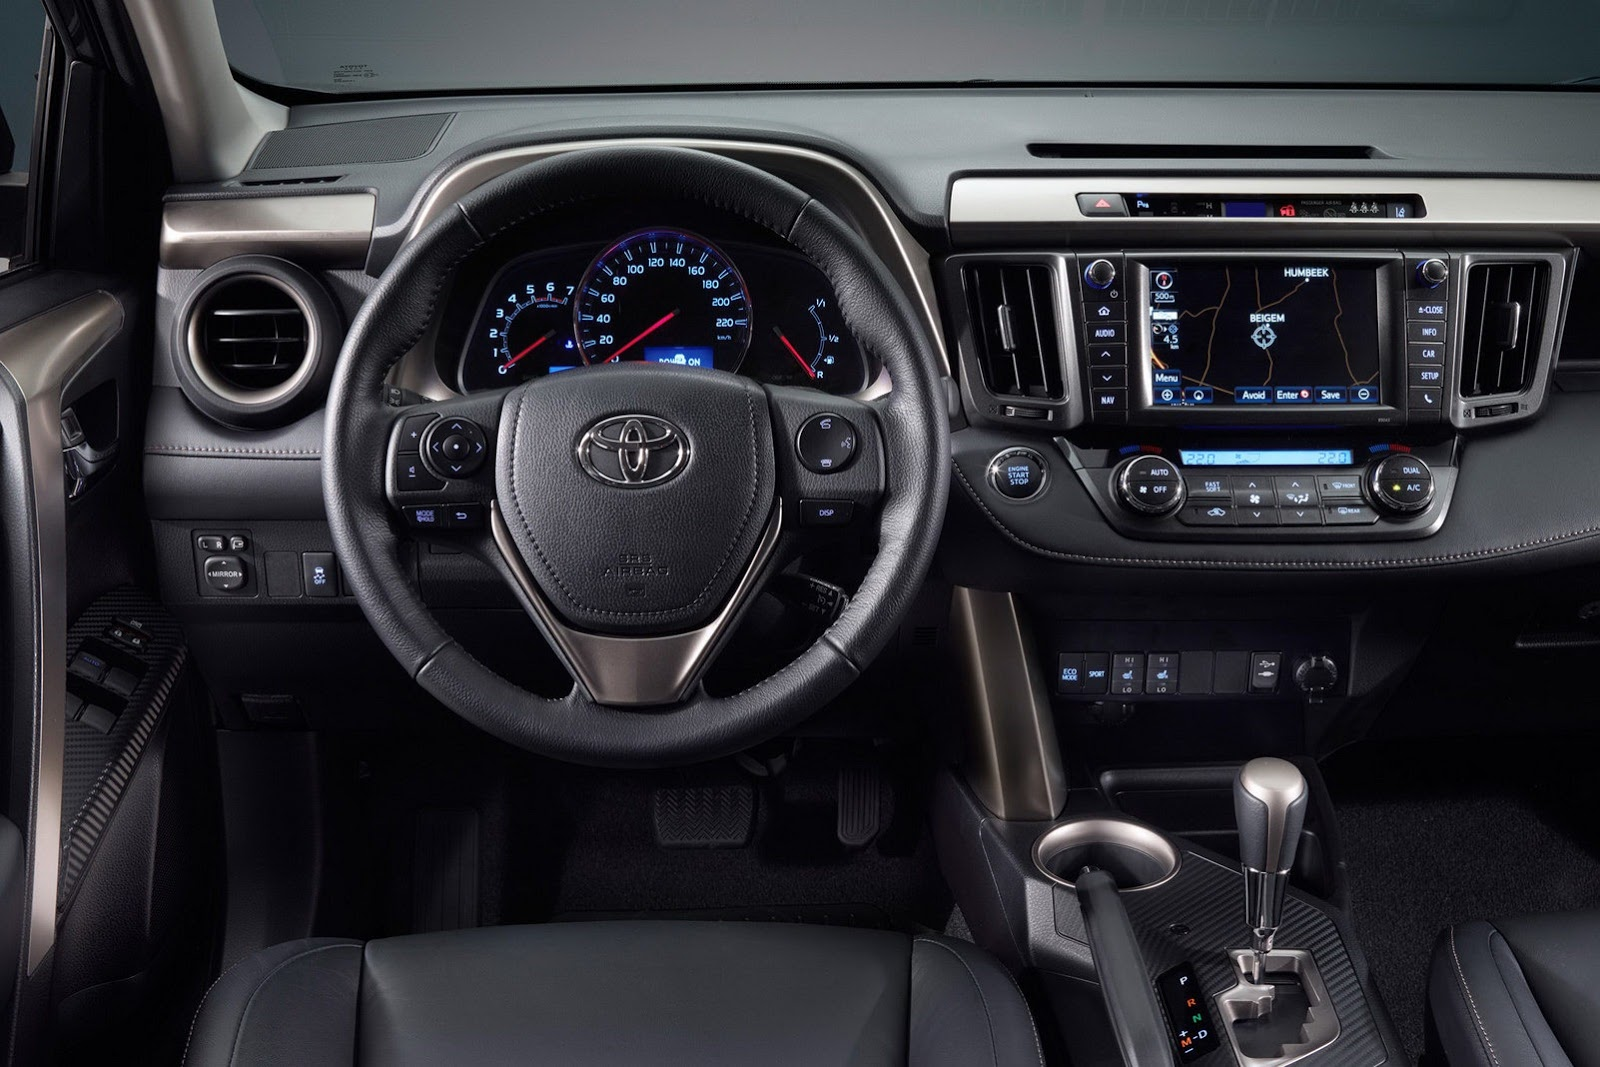 2013 Toyota RAV4 on Sale Date and Pricing Announced - autoevolution